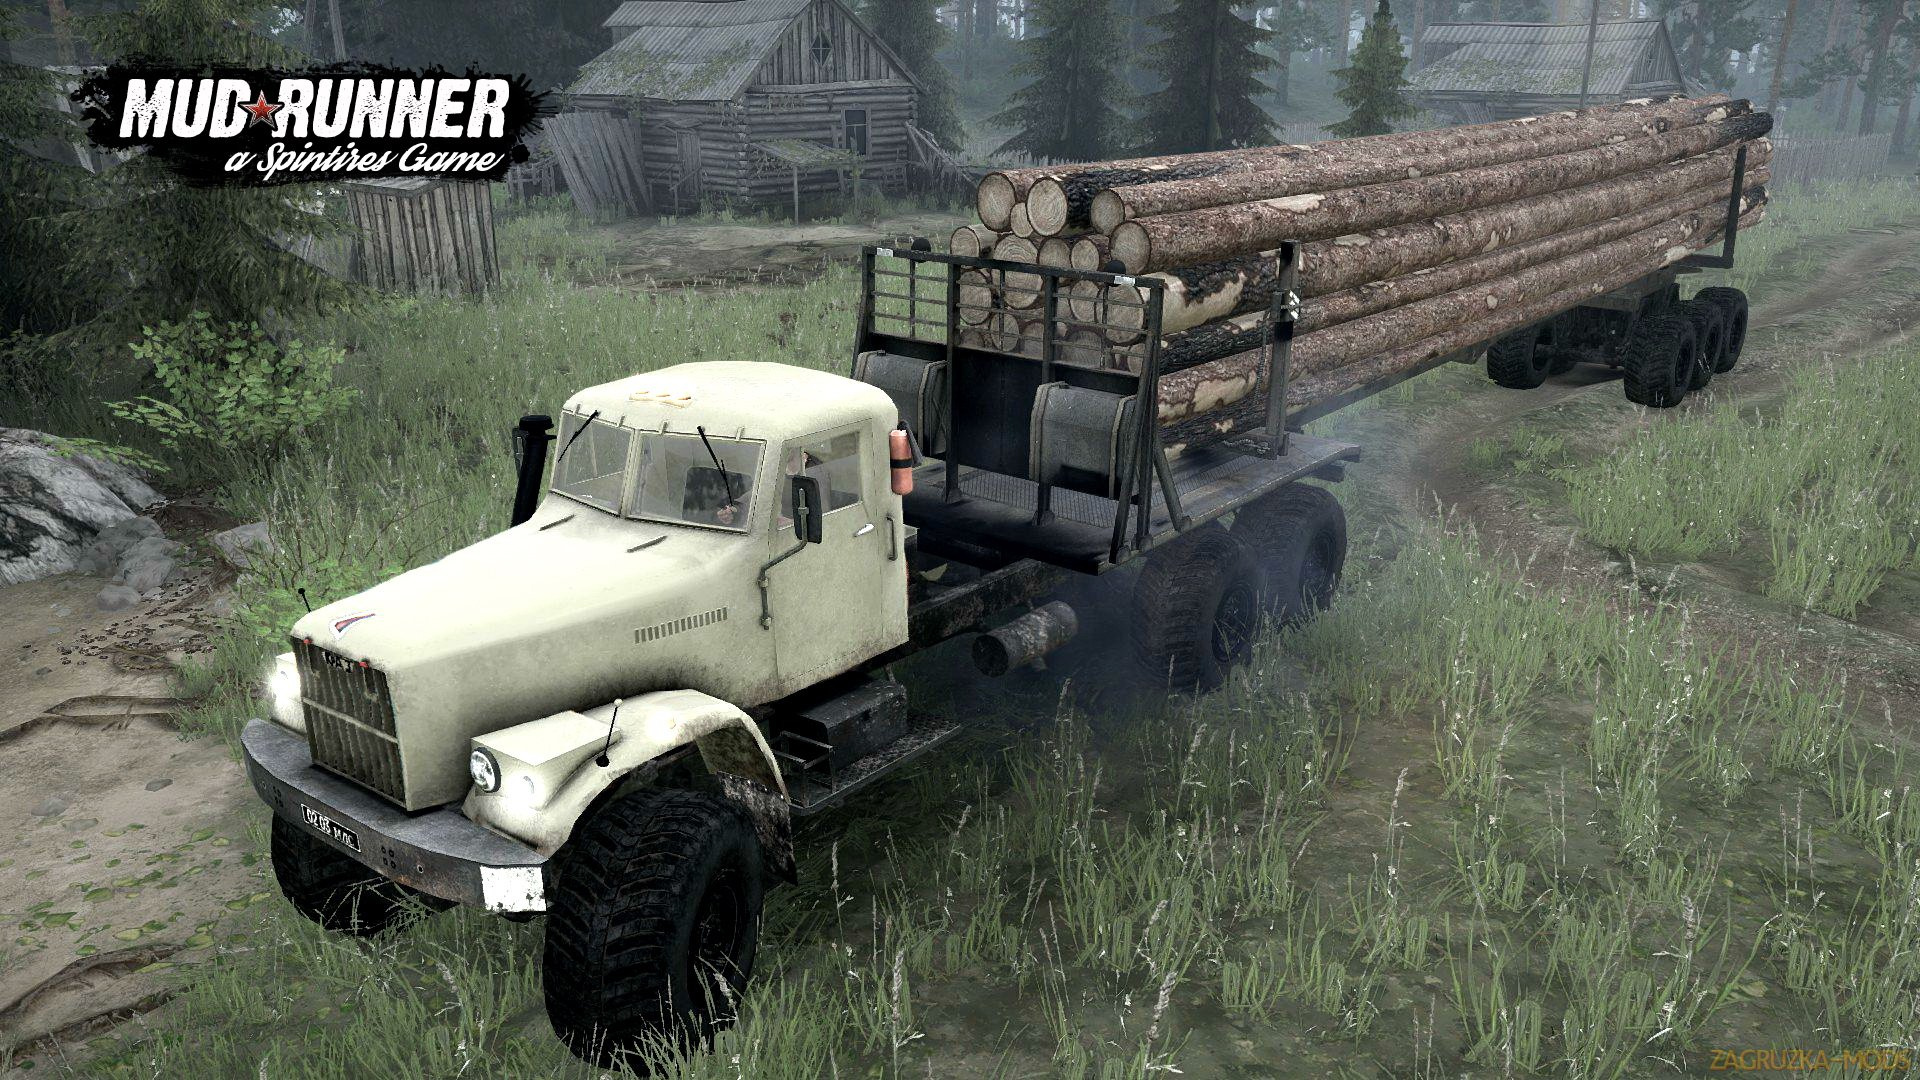 KrAZ-257 SVE 6x6 v1.0 (Updated) (v26.10.17) for Spin Tires: MudRunner